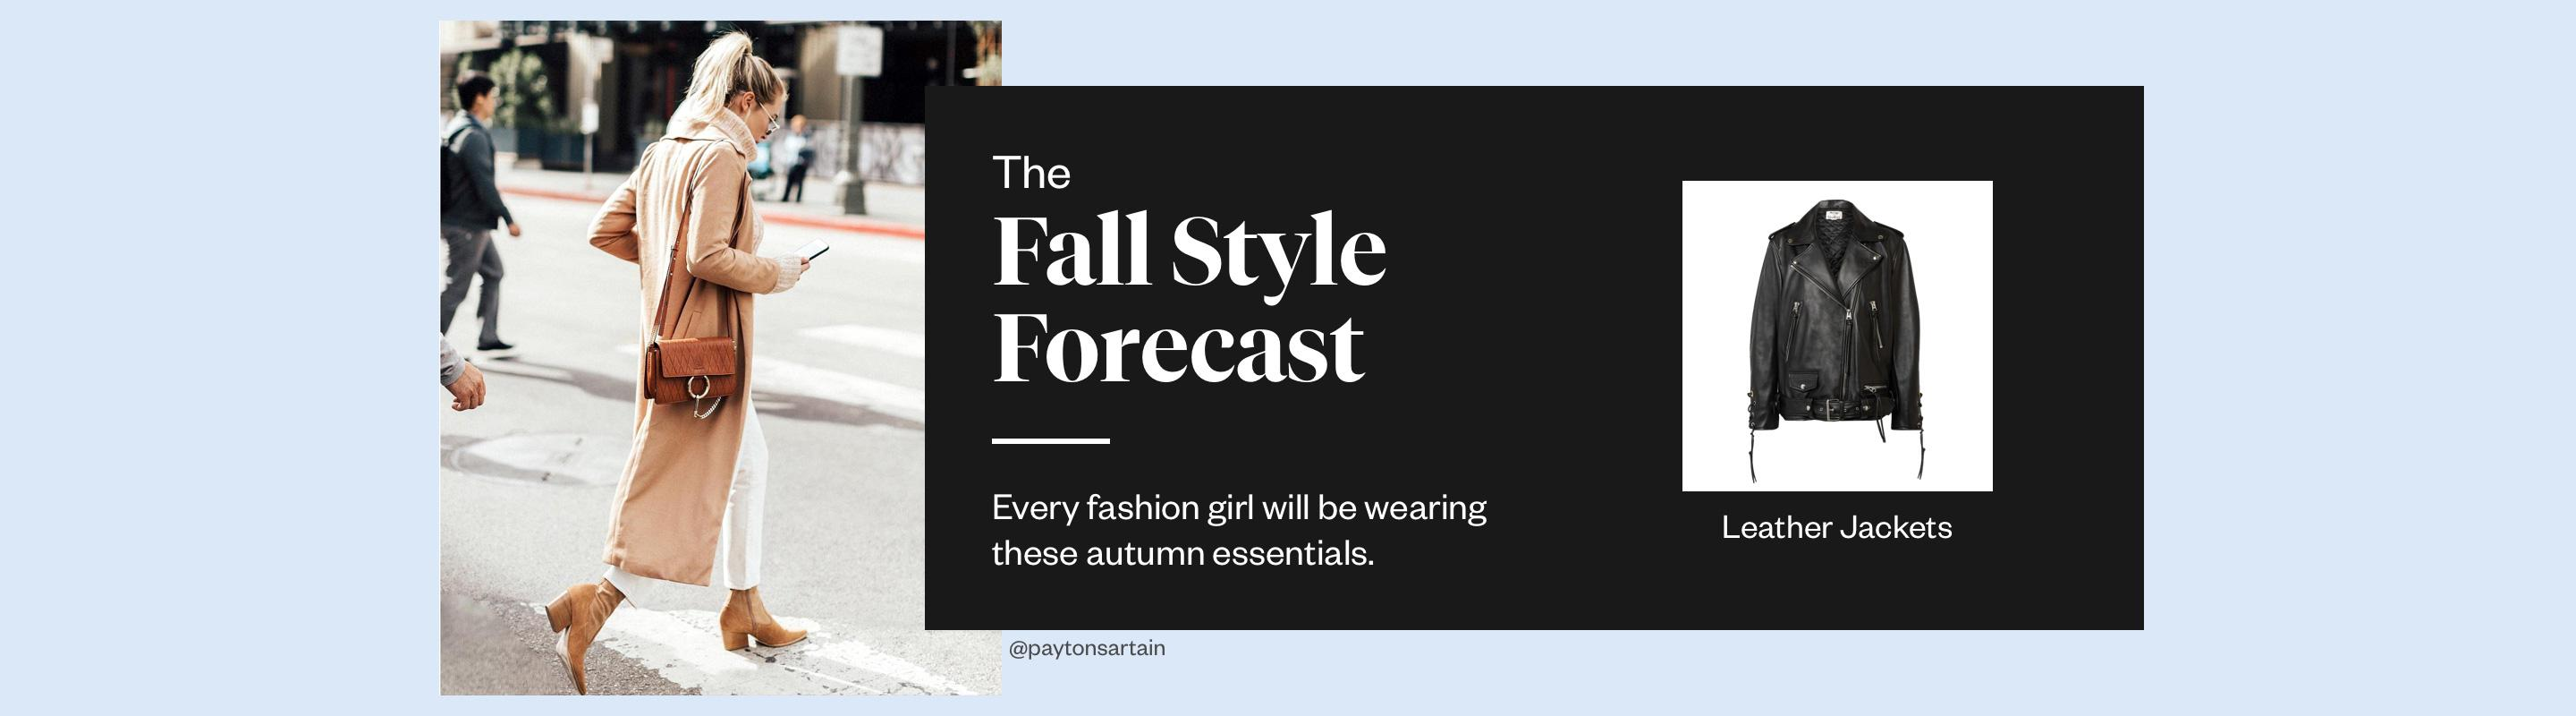 The Fall Style Forecast: Leather Jackets